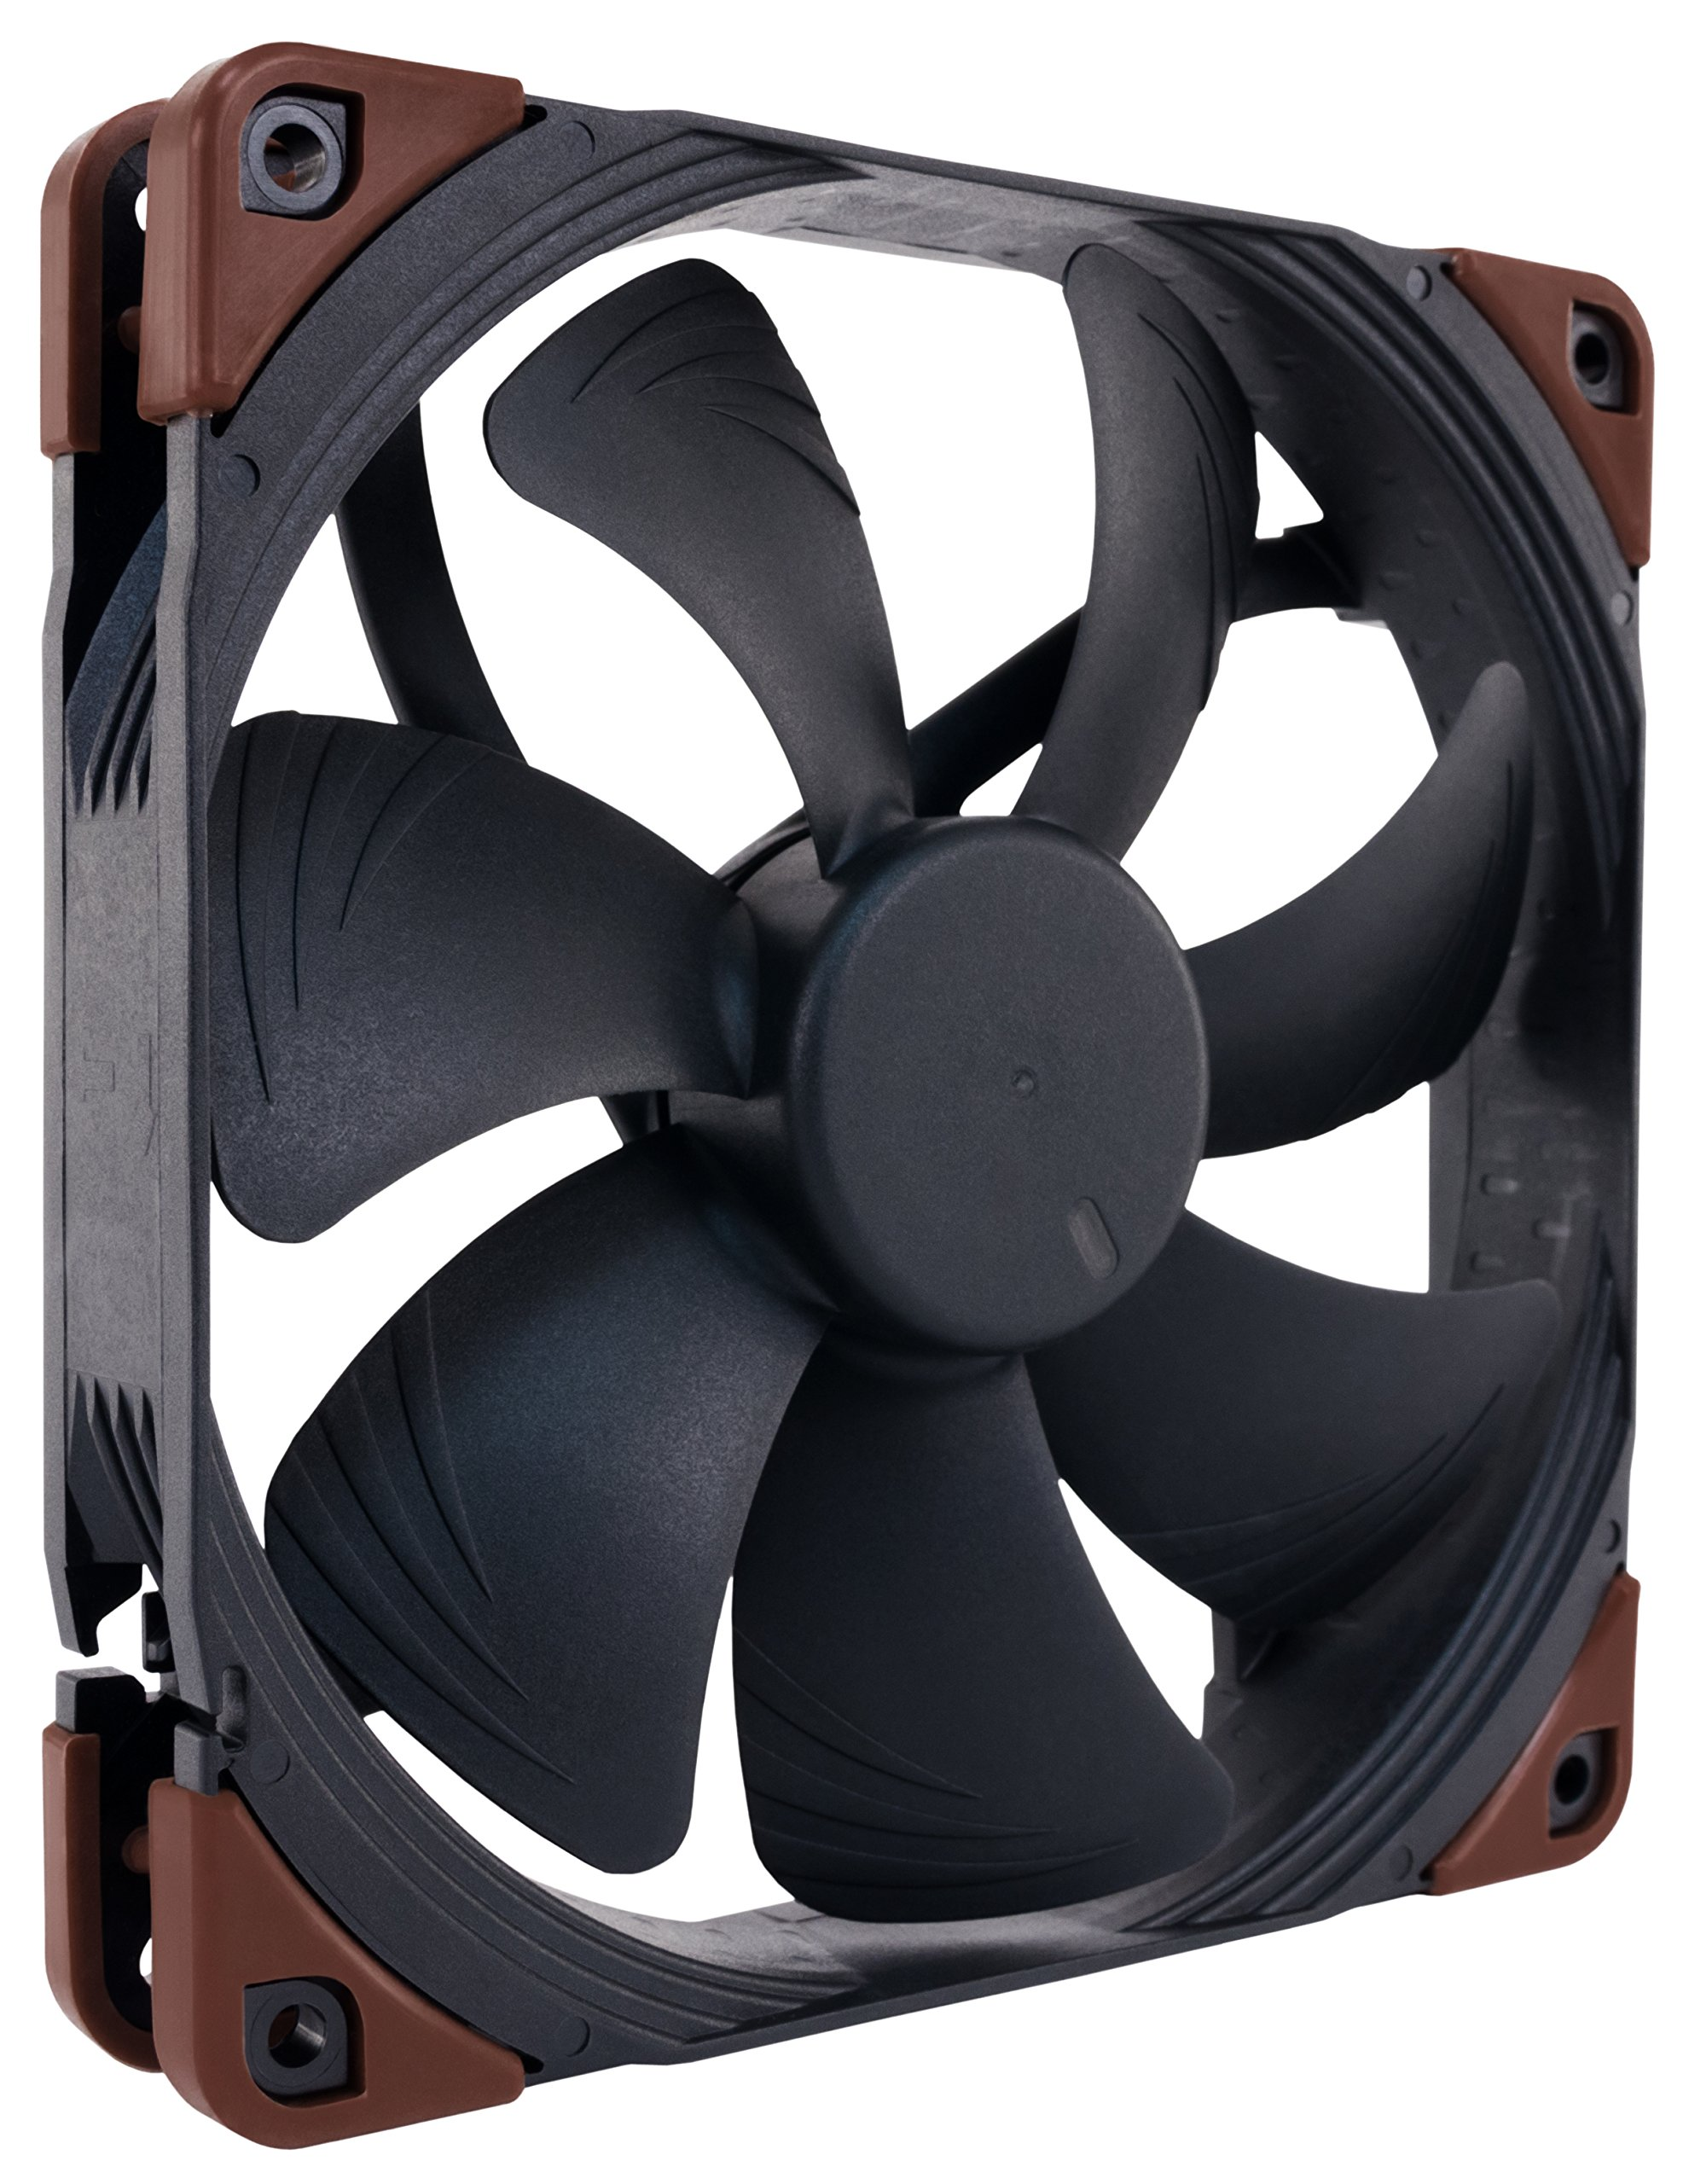 Noctua NF-A14 iPPC-2000 PWM, 4-Pin, Heavy Duty Cooling Fan with 2000RPM (140mm, Black) by NOCTUA